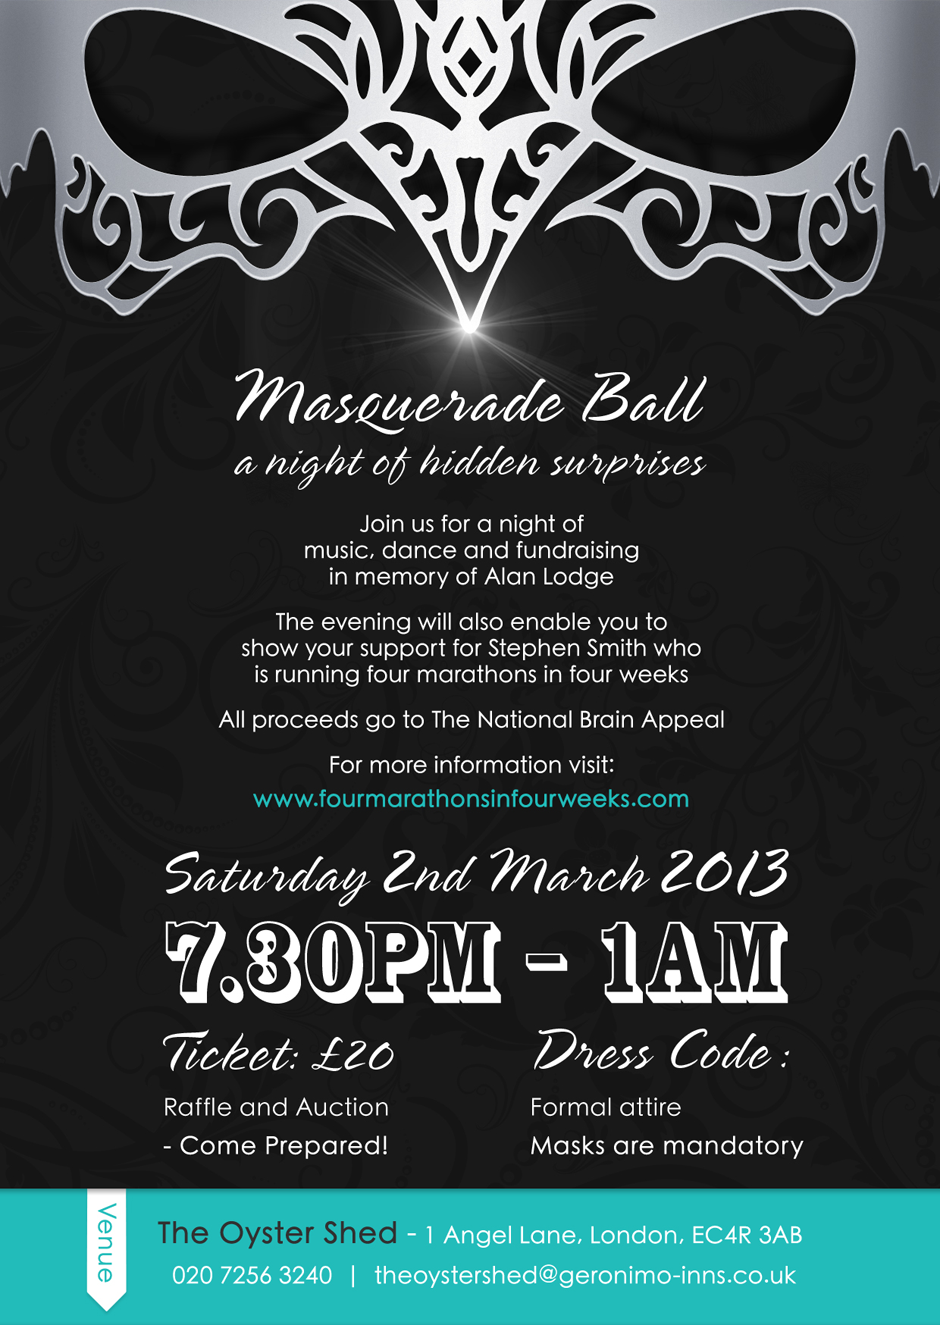 masquerade ball an event flyer created to promote a masquerade ball